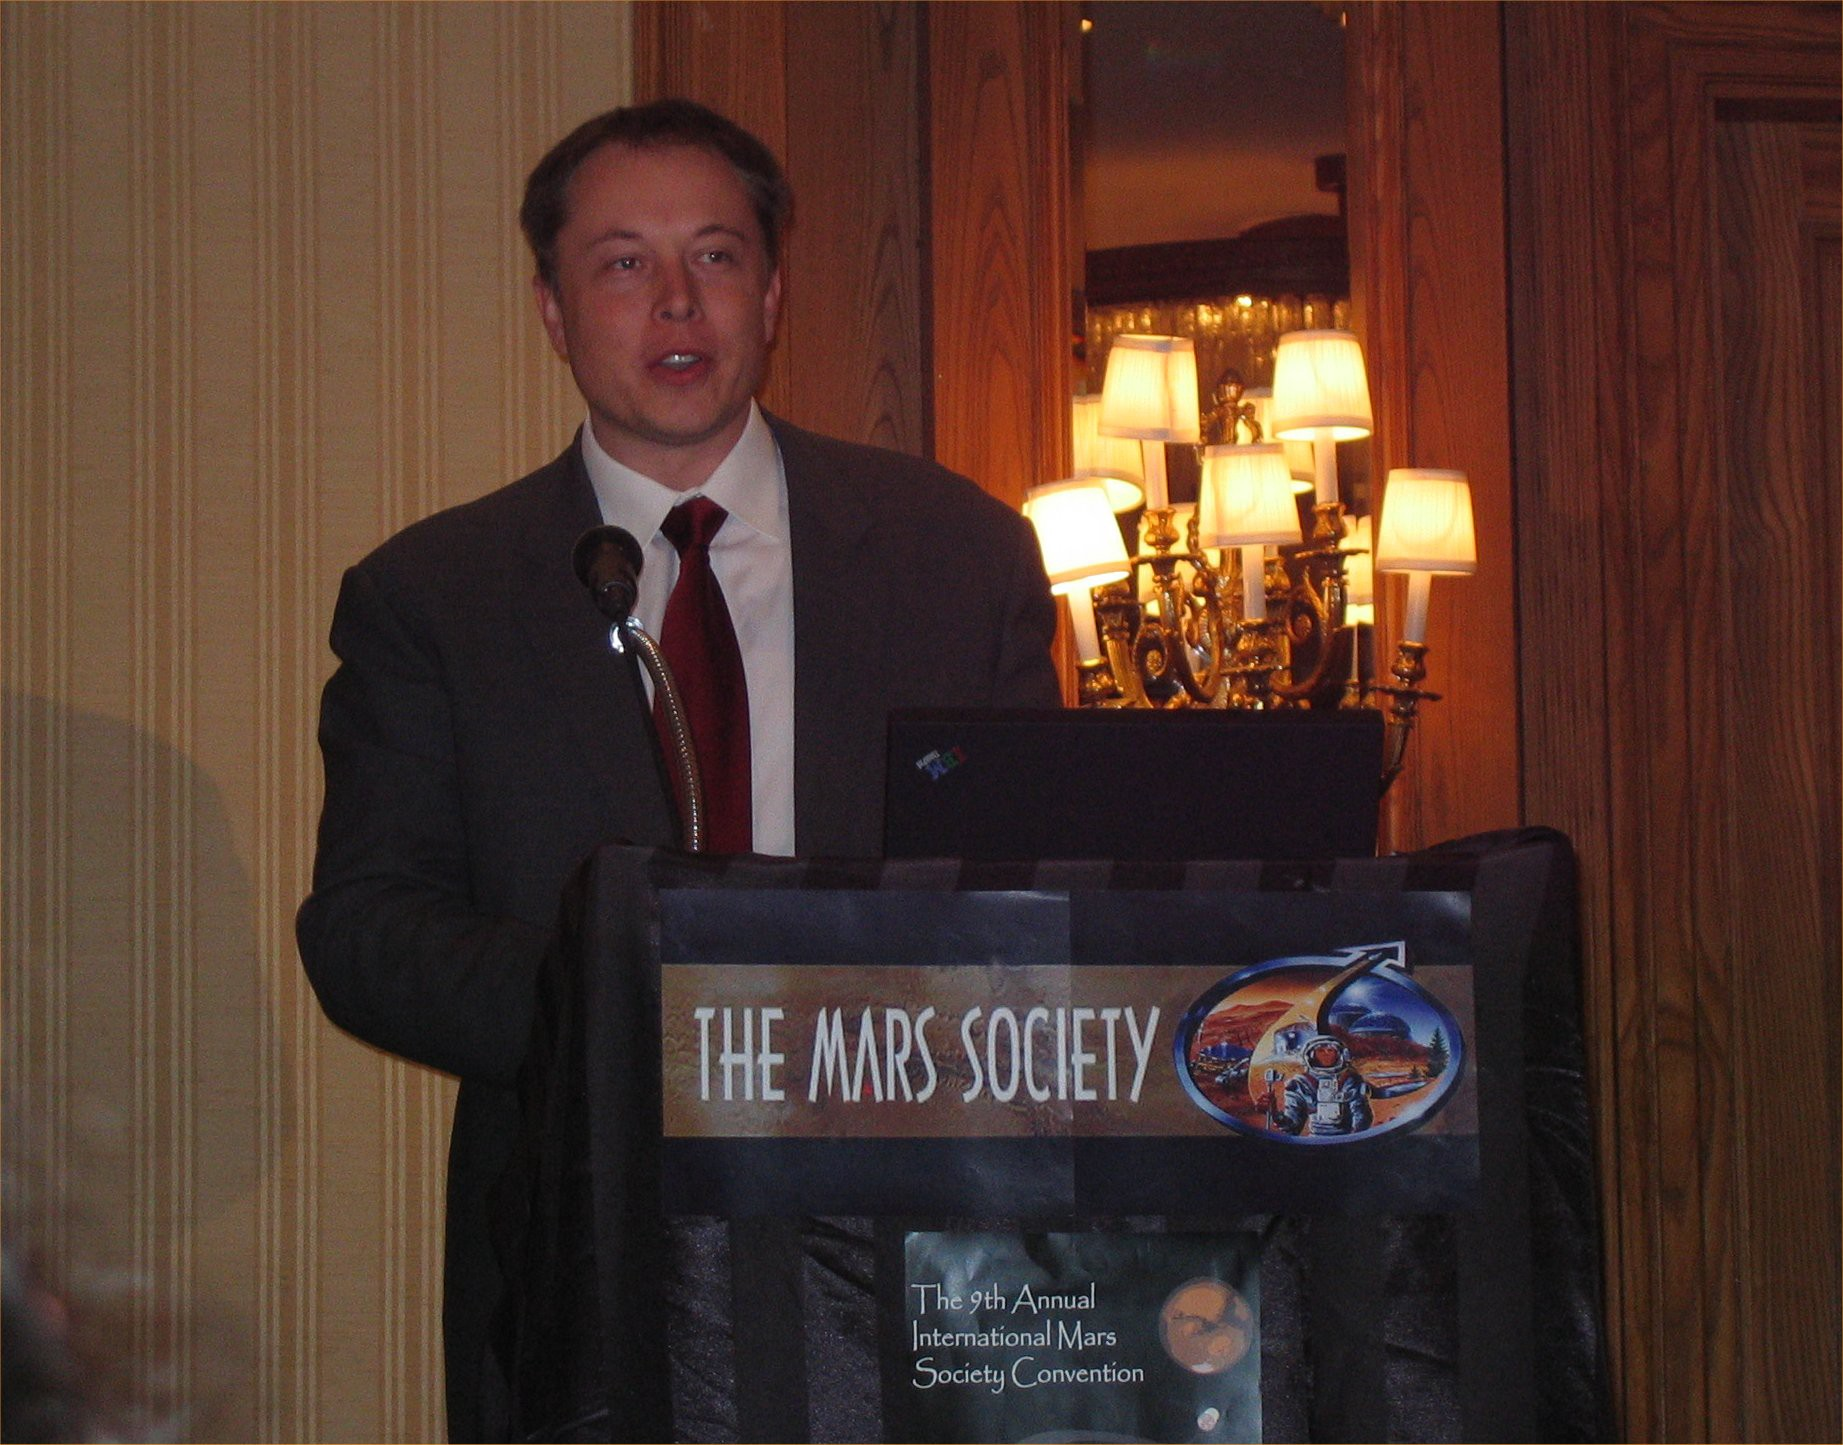 Elon Musk speaking at the Annual International Mars Society Convention in 2006.